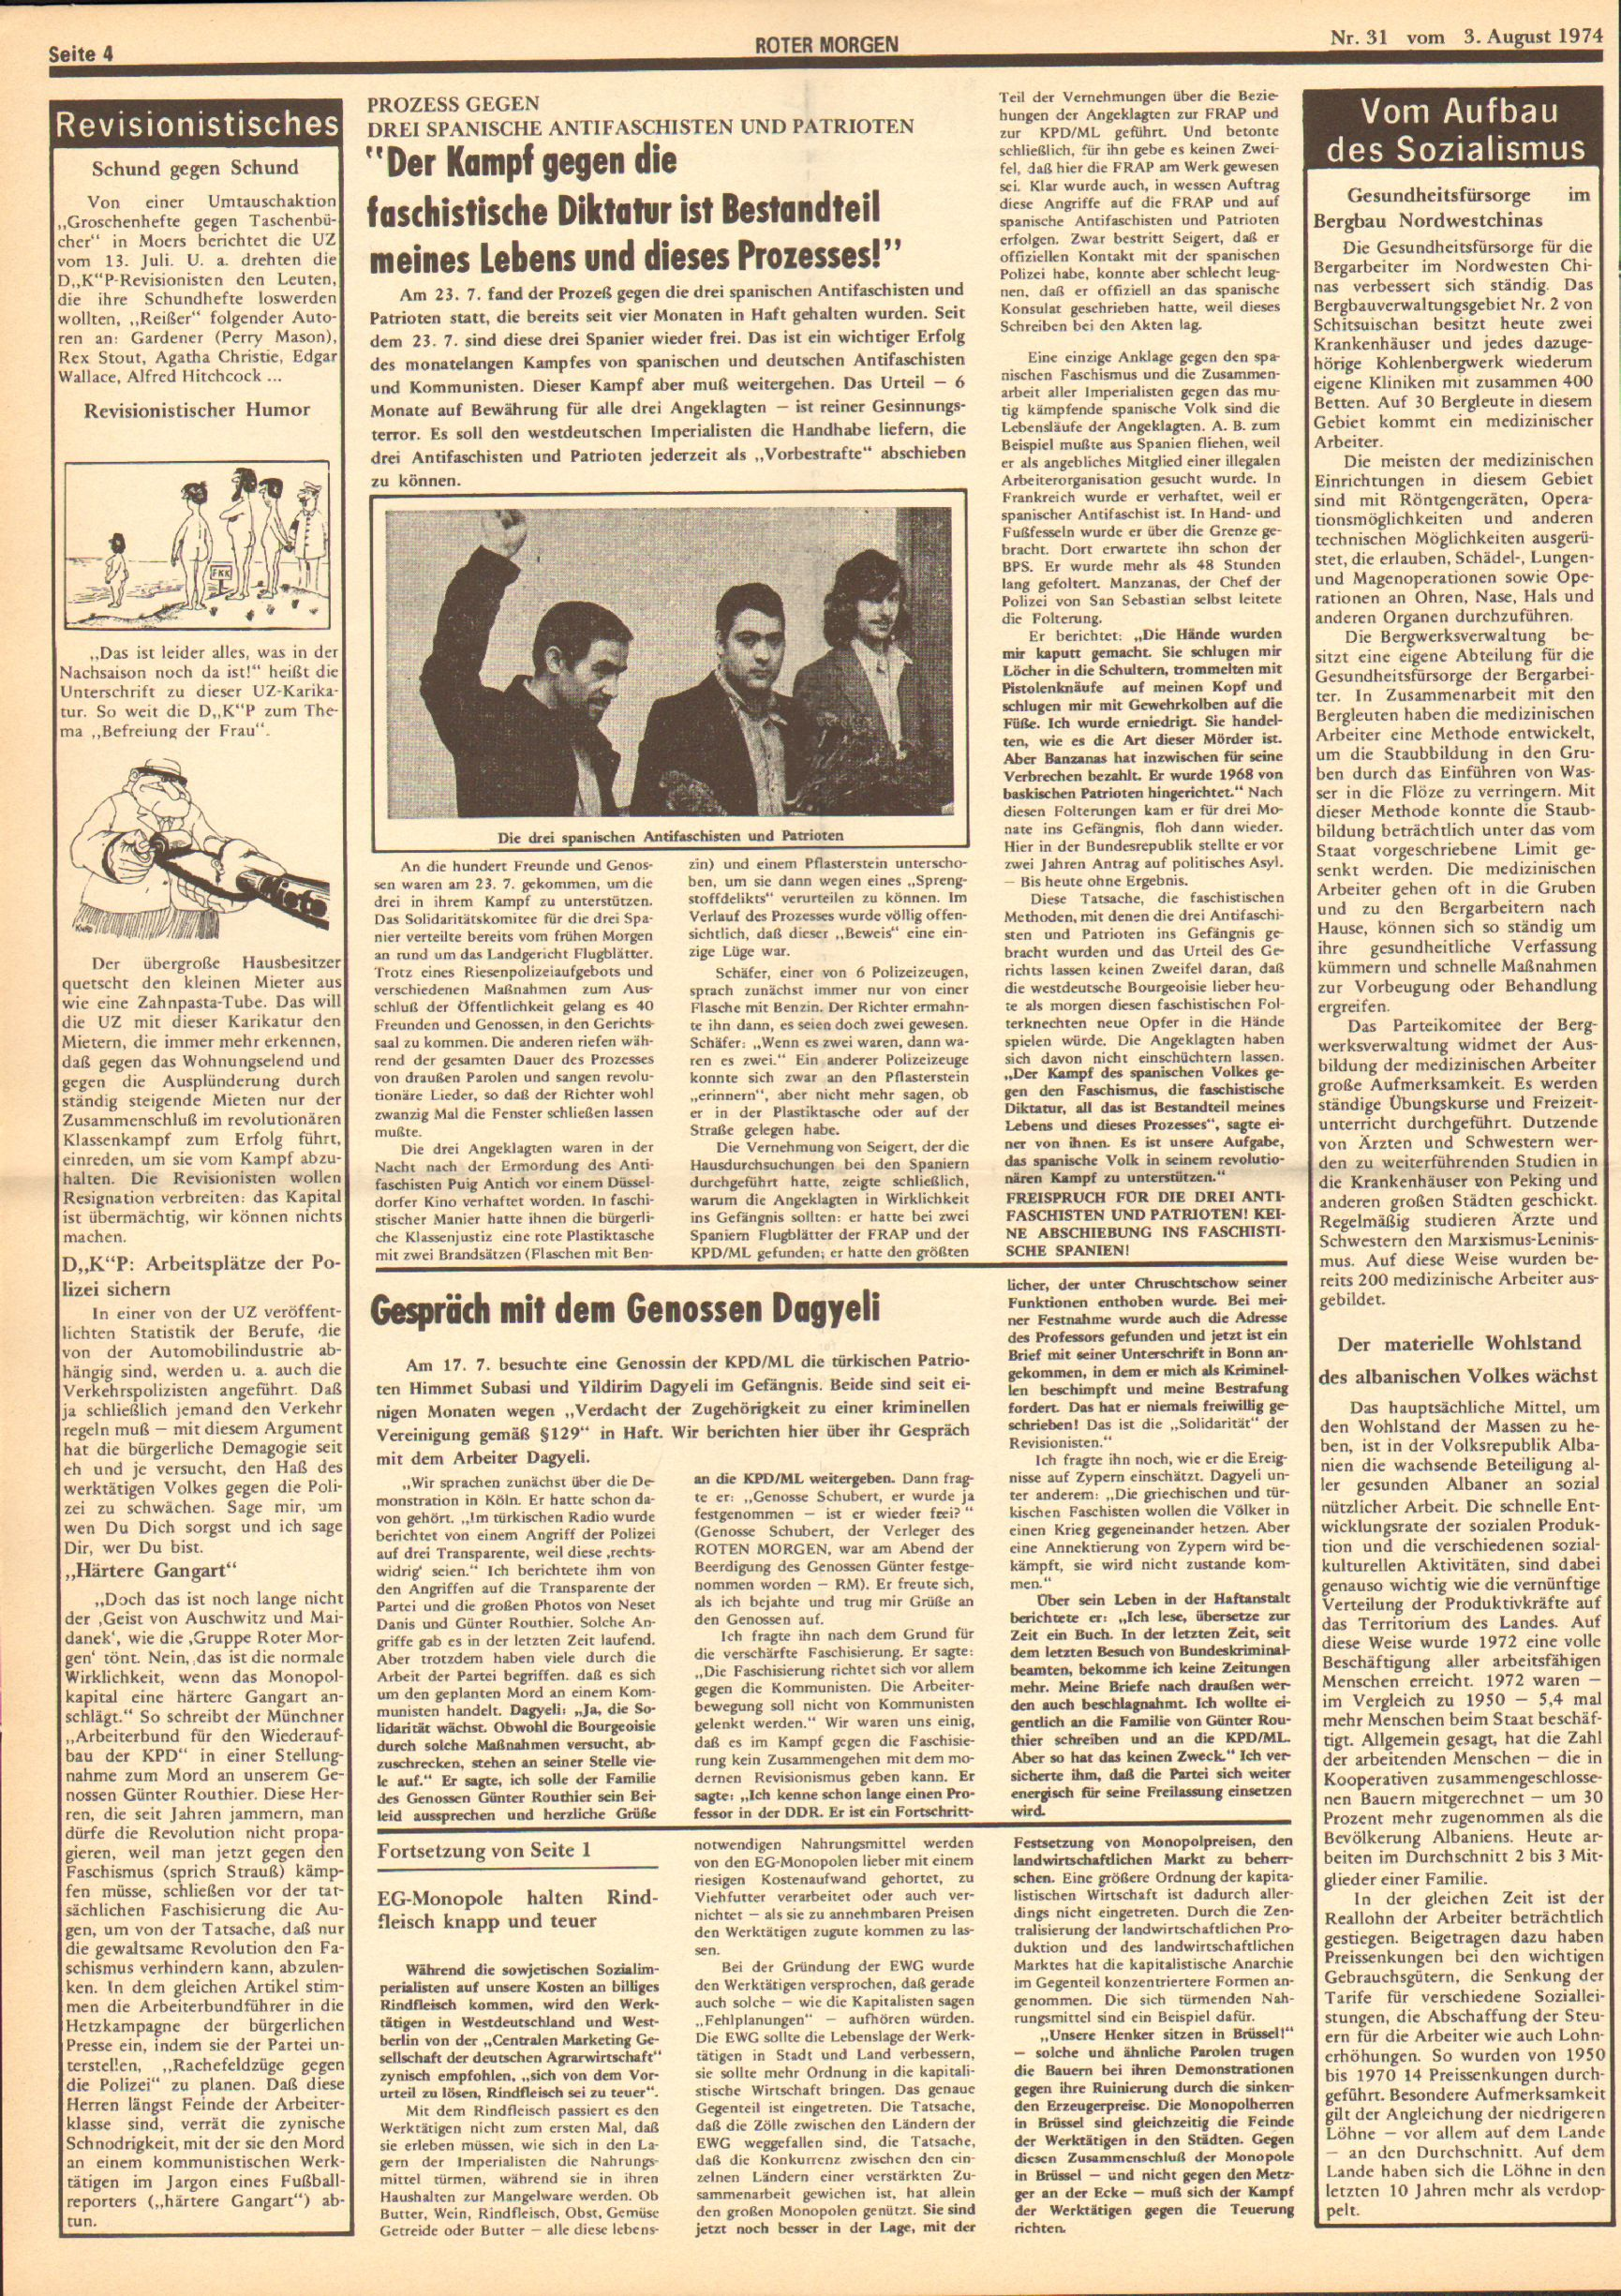 Roter Morgen, 8. Jg., 3. August 1974, Nr. 31, Seite 4